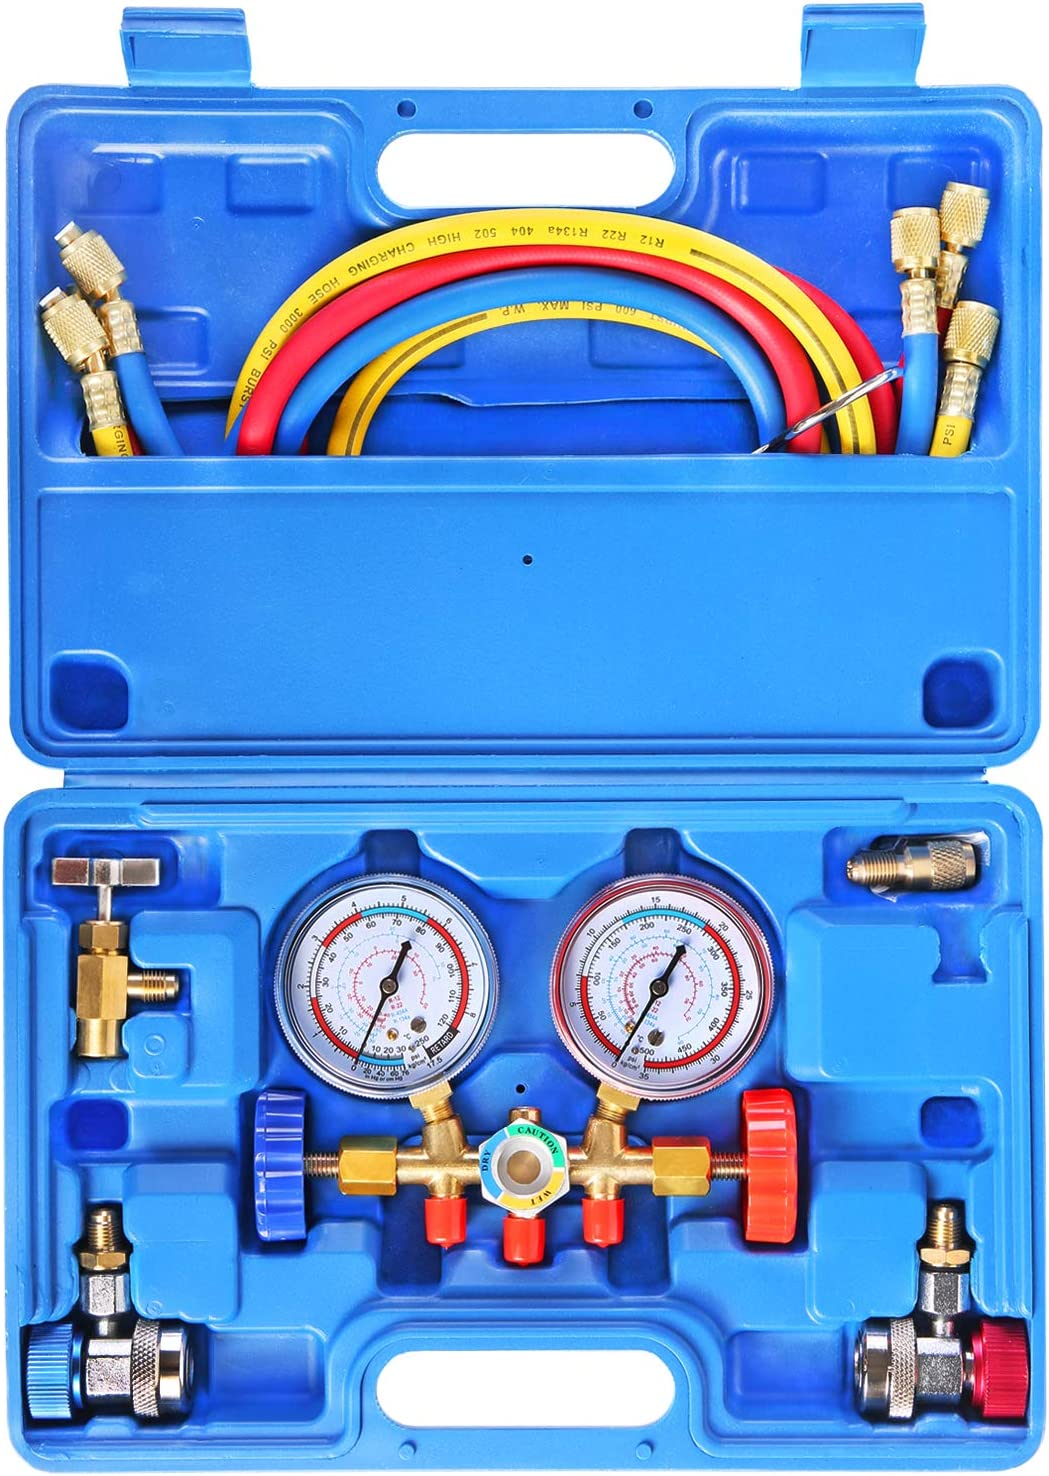 JIFETOR 3 Way AC Manifold Gauge Set, HVAC Diagnostic Freon Charging Tool for Auto Household R12 R22 R404A R134A Refrigerant, with 5FT Hose, Adjustable Quick Coupler, Can Tap and Acme Adapter